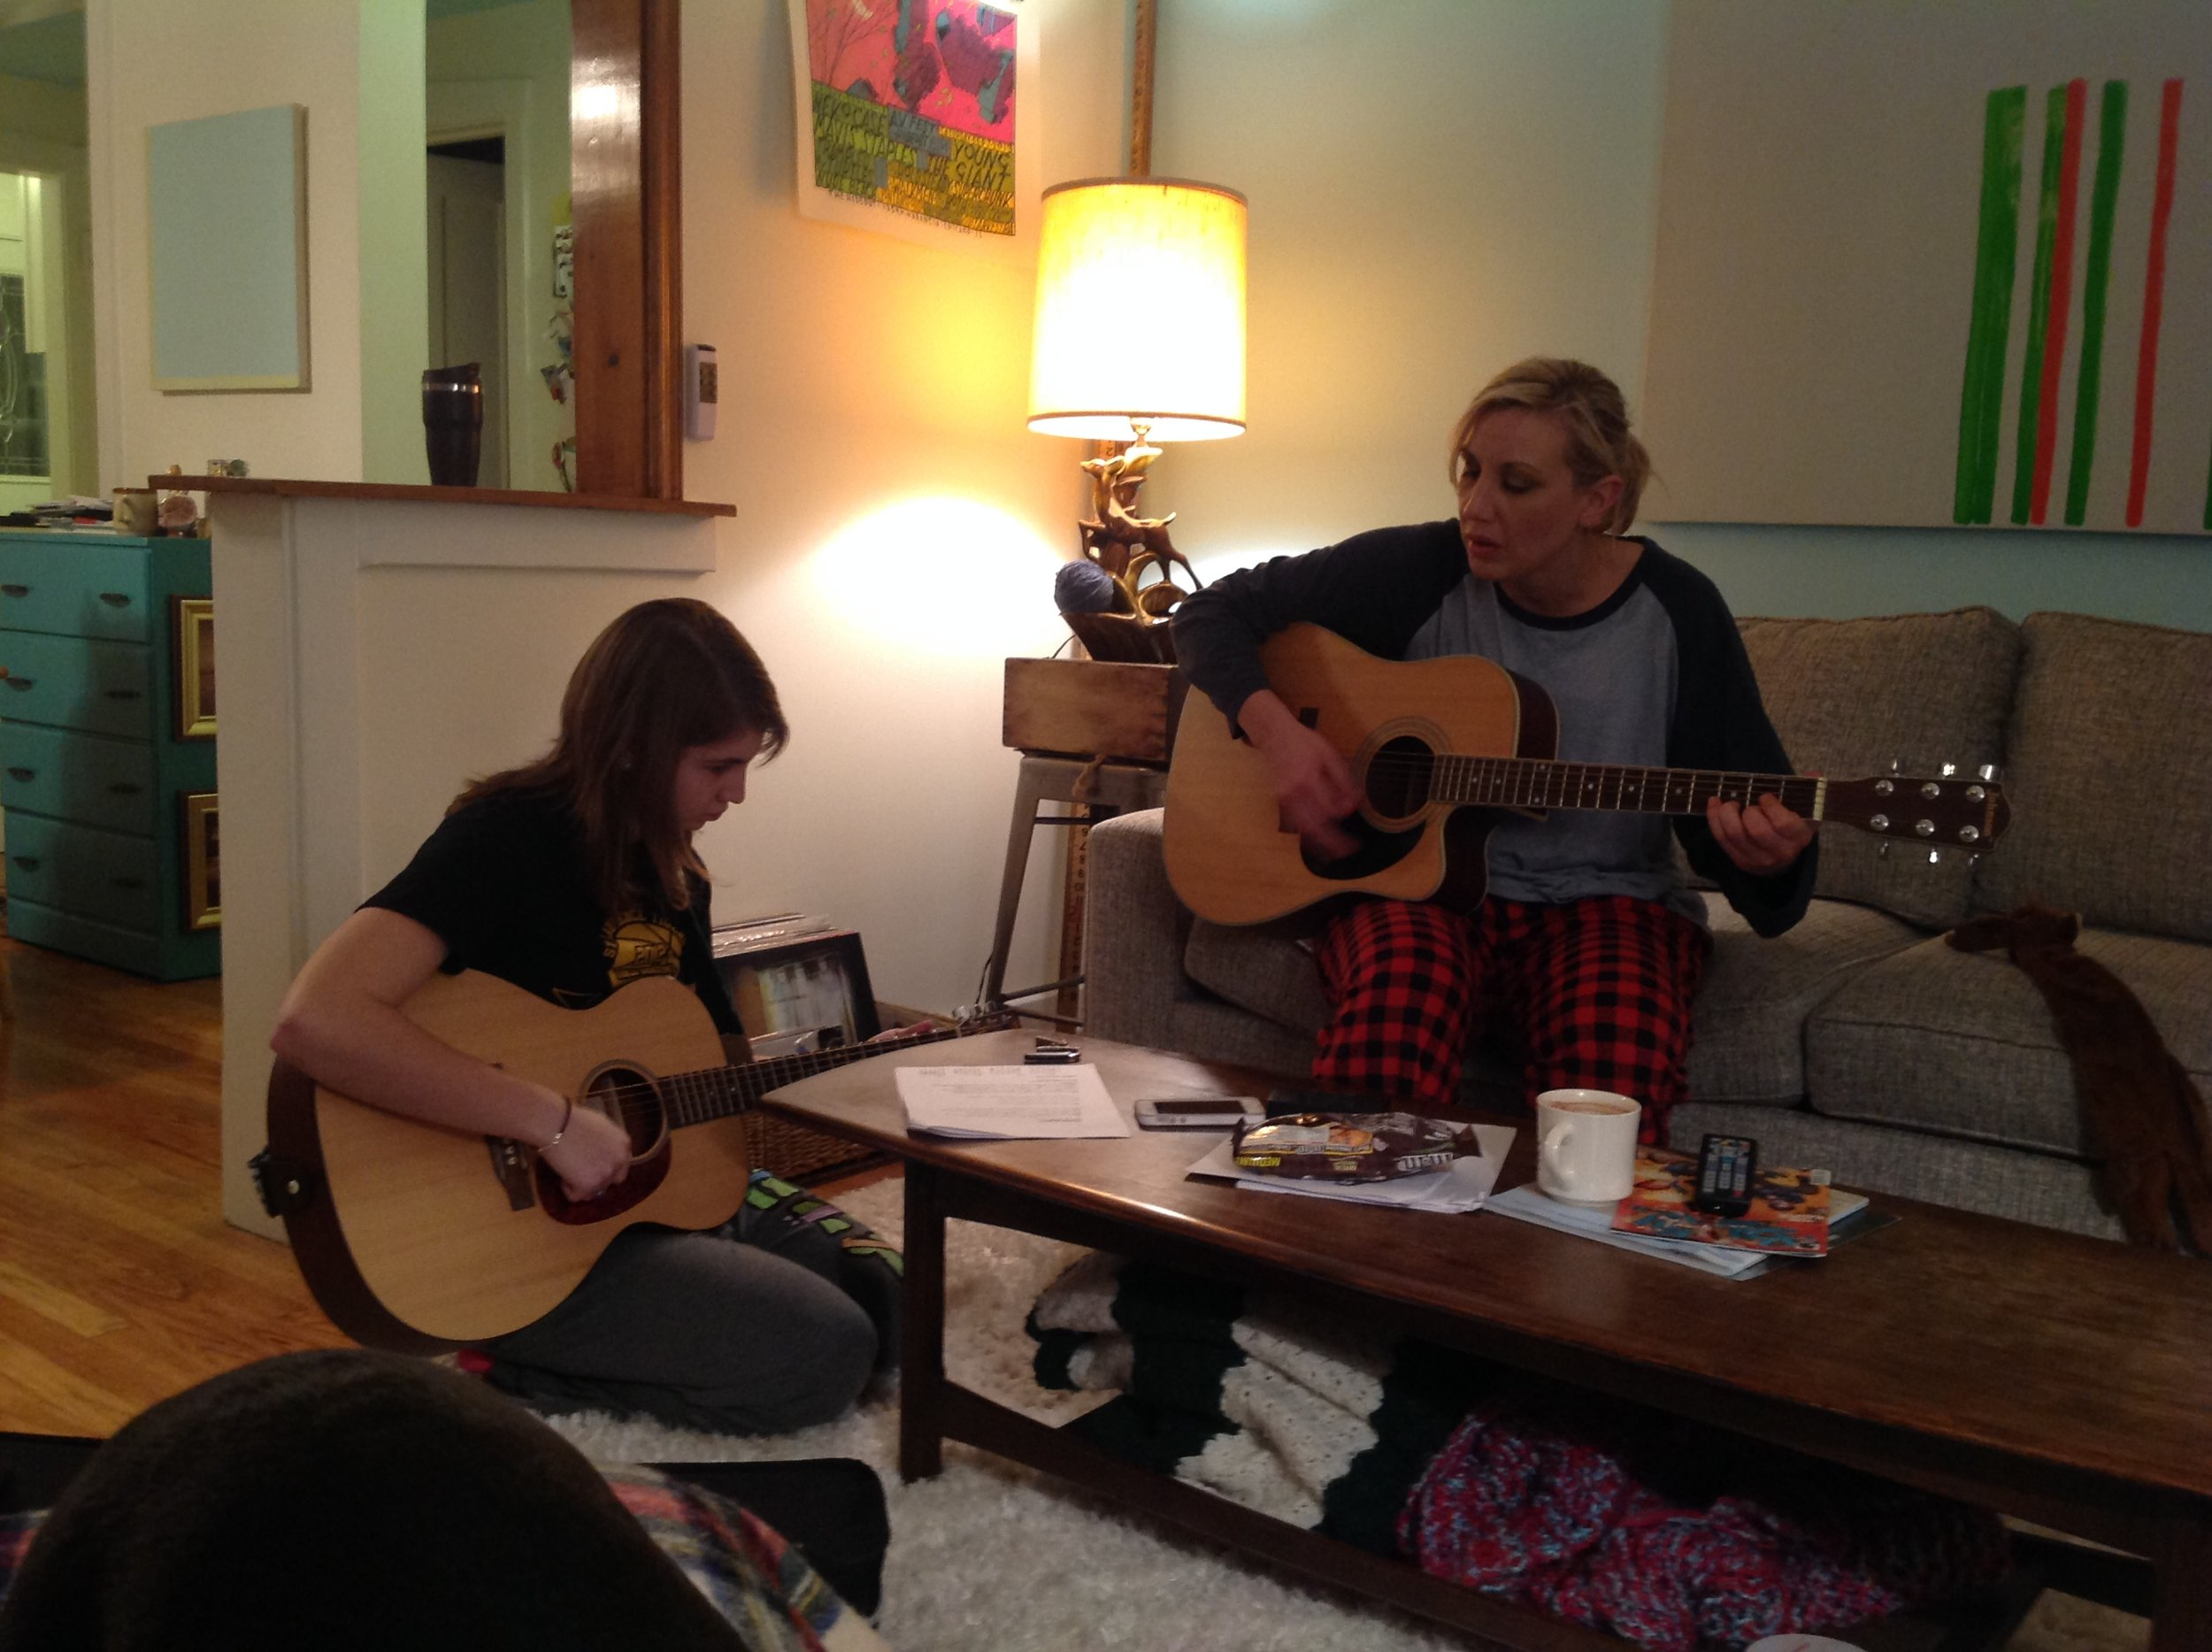 Playing guitar with family.